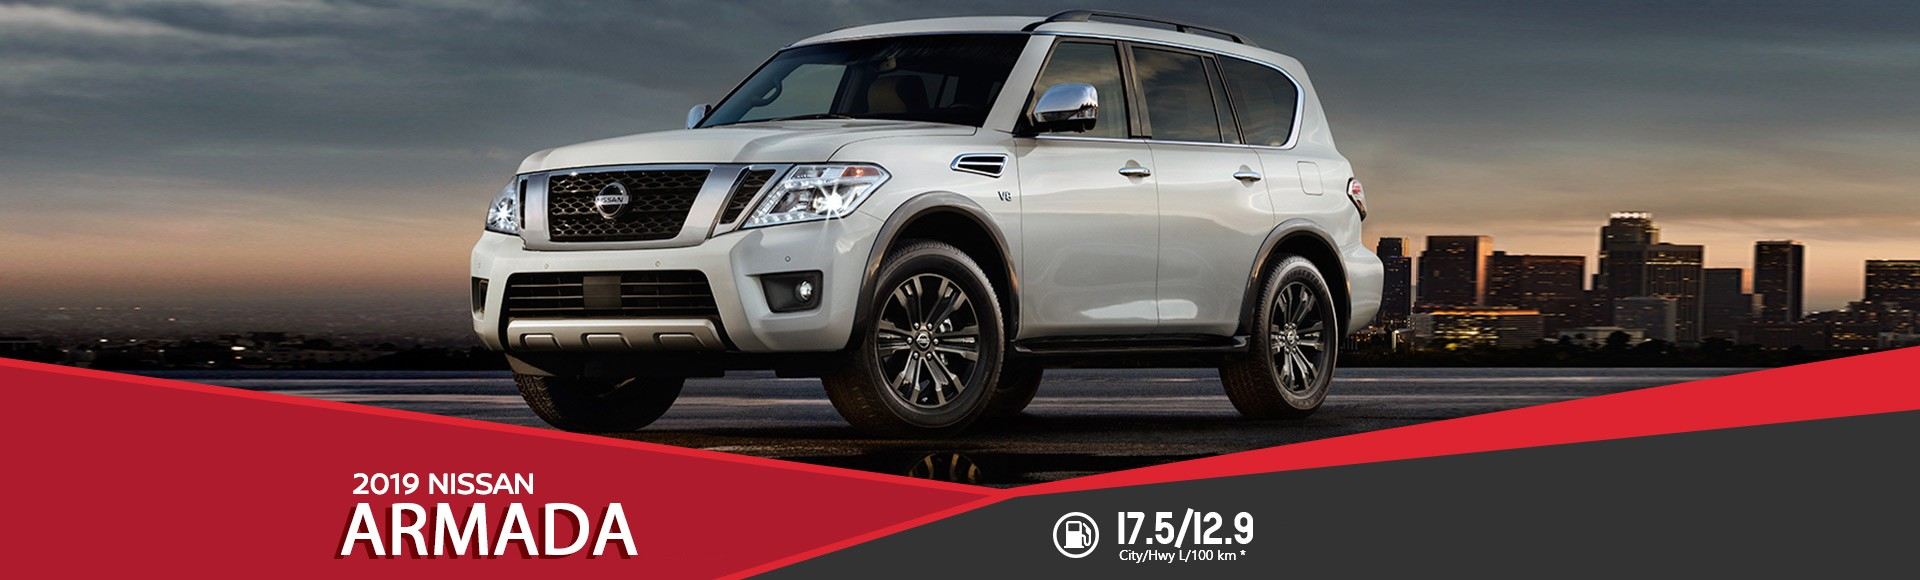 hight resolution of 2019 nissan armada